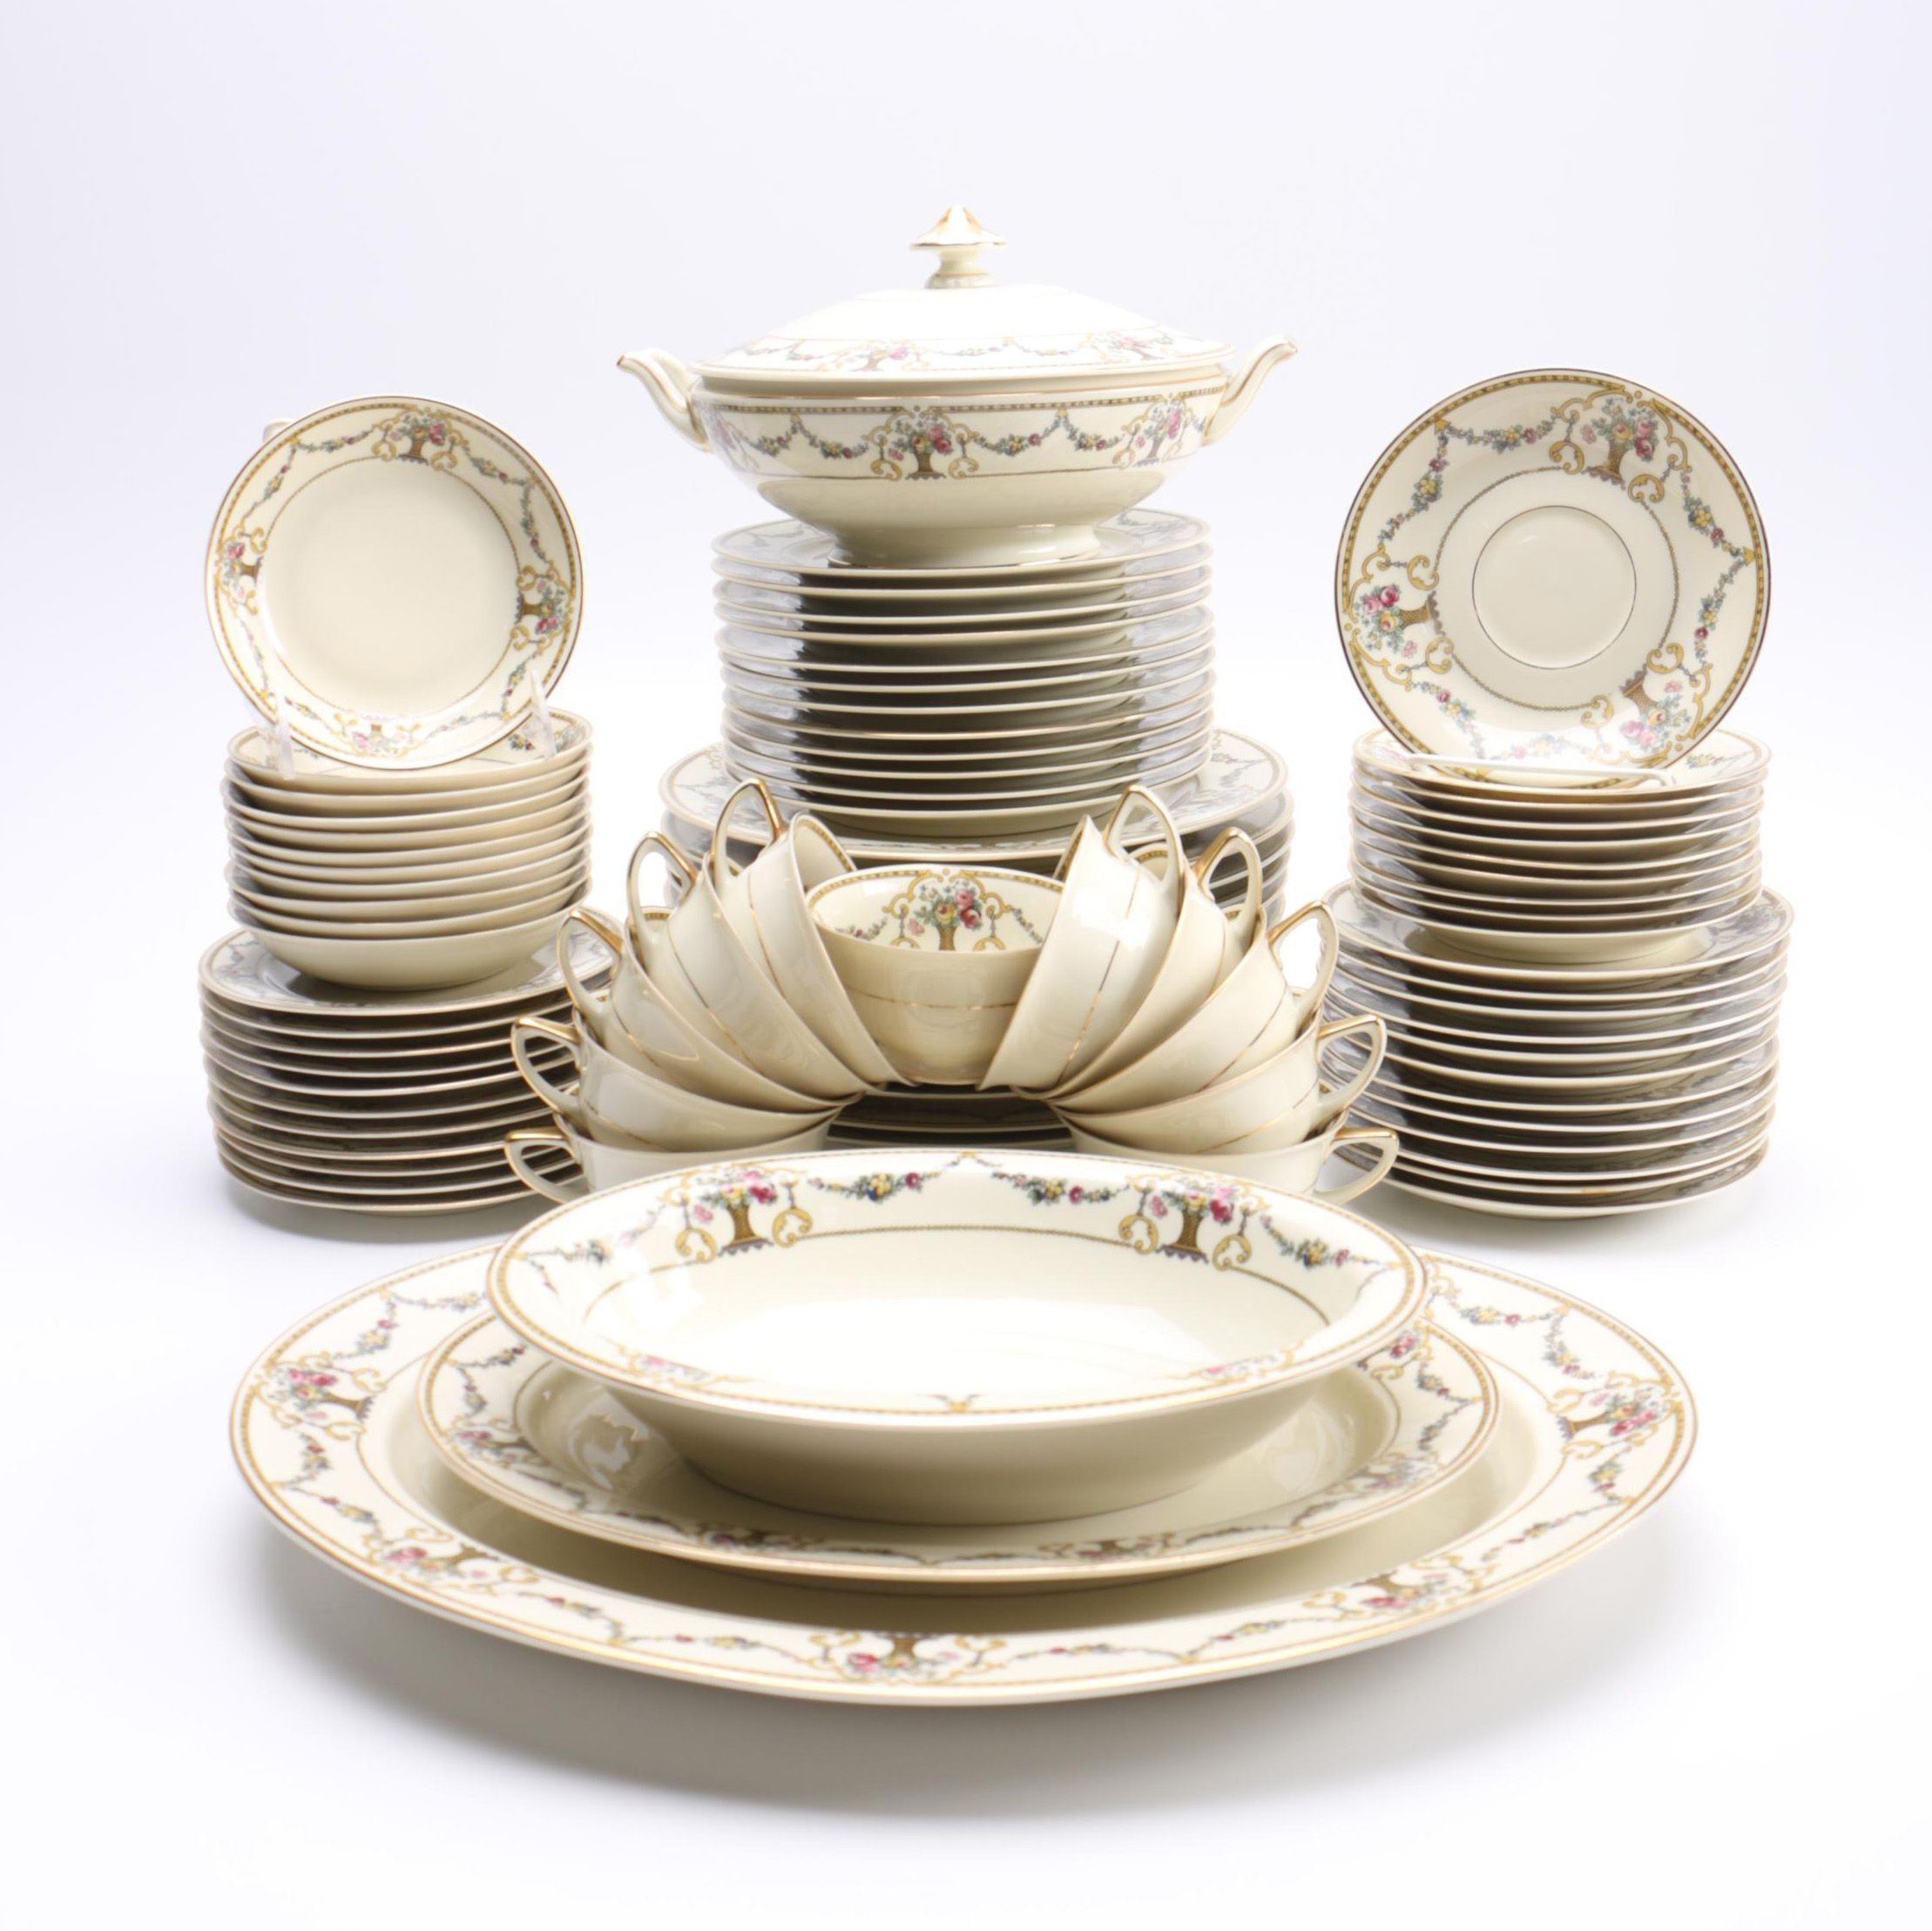 """HC238"" Heinrich & Co. Bavarian China Set"